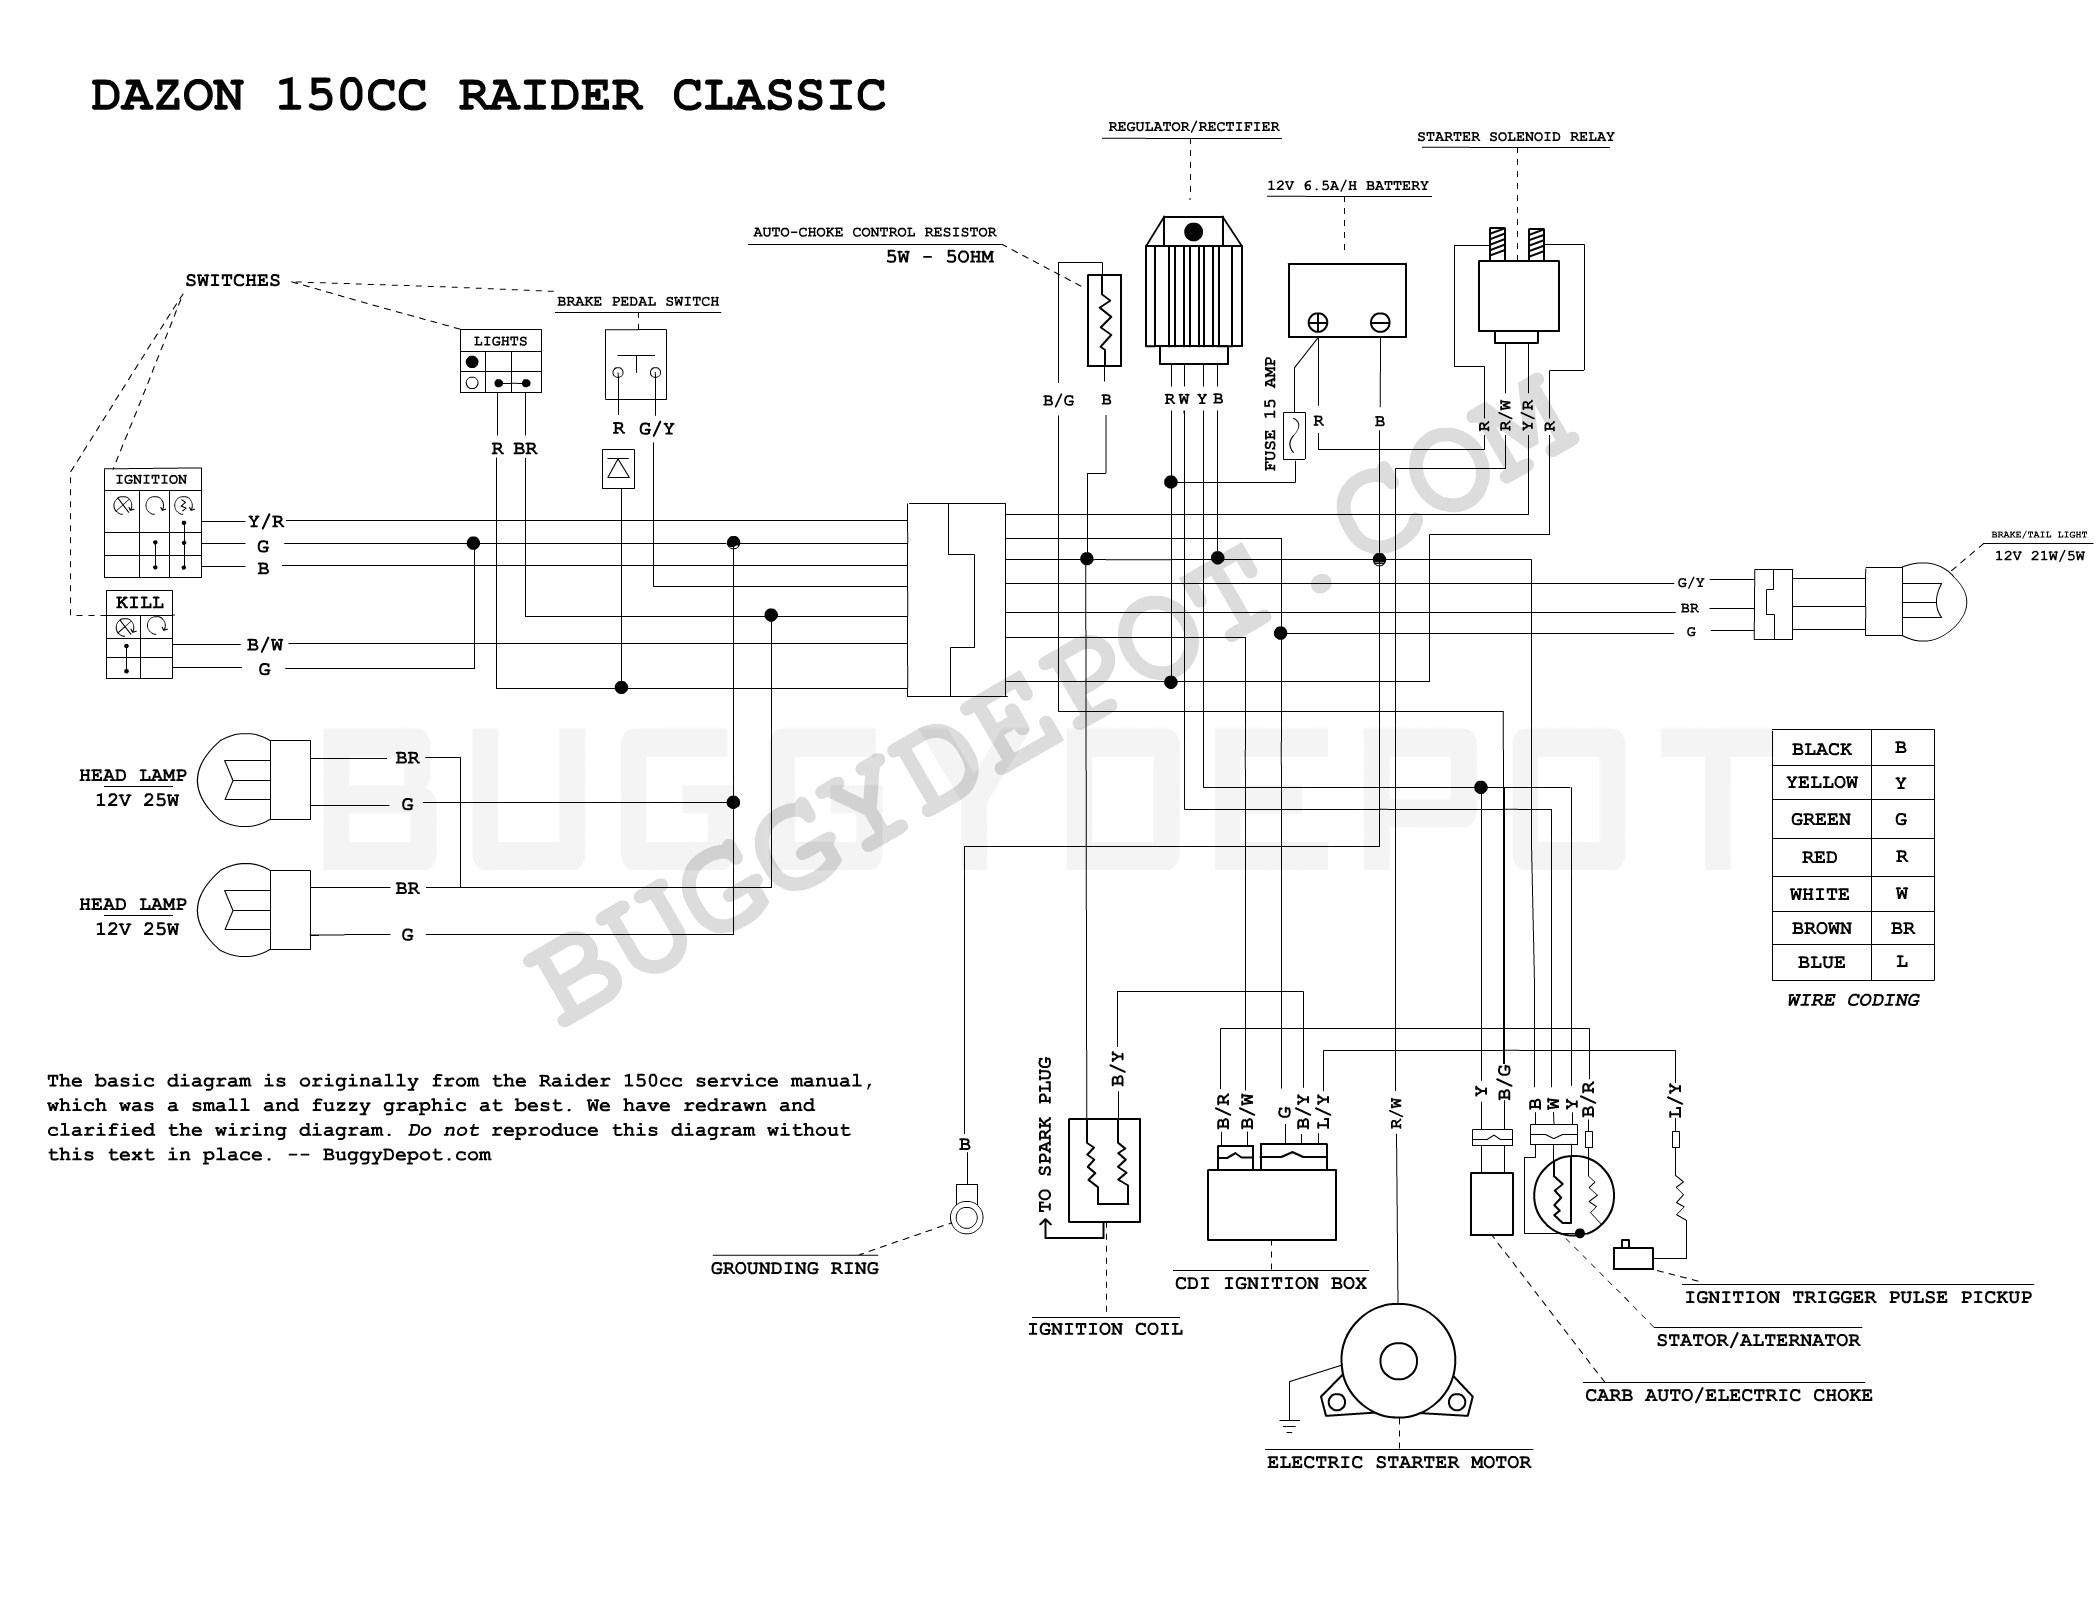 dazon raider classic wiring diagram buggy depot 2005 honda helix specs